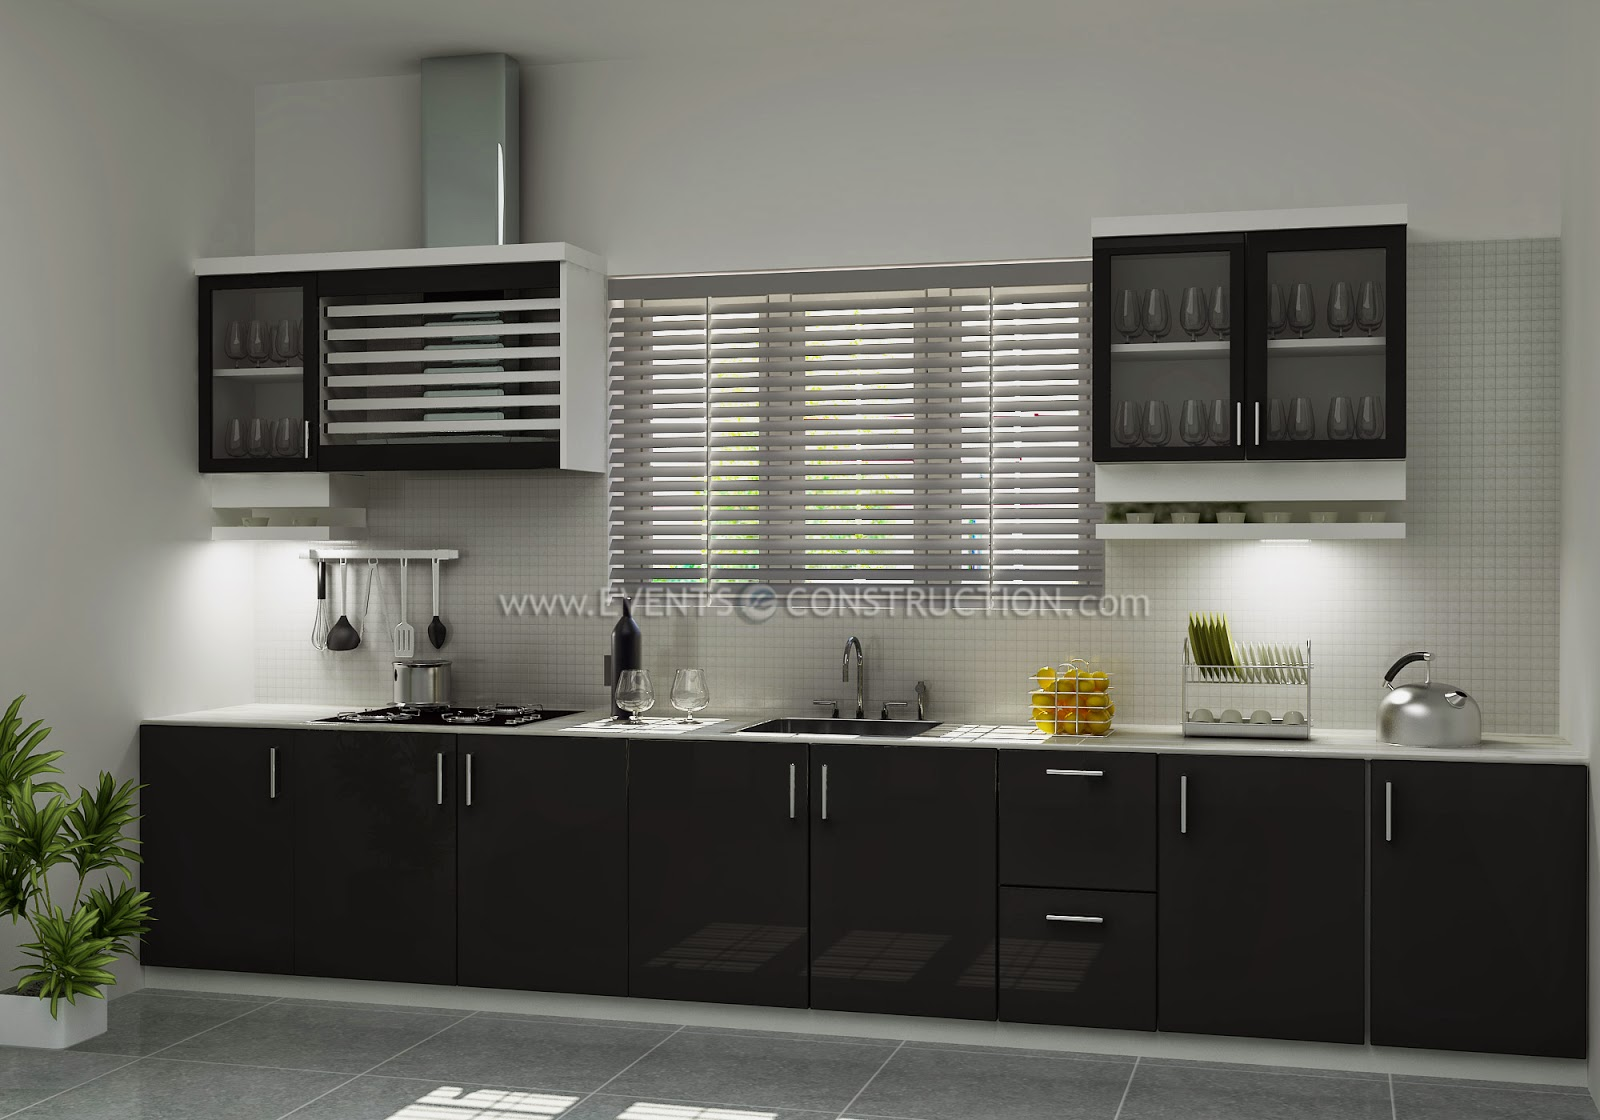 simple kitchen interior design india this modular kitchen design